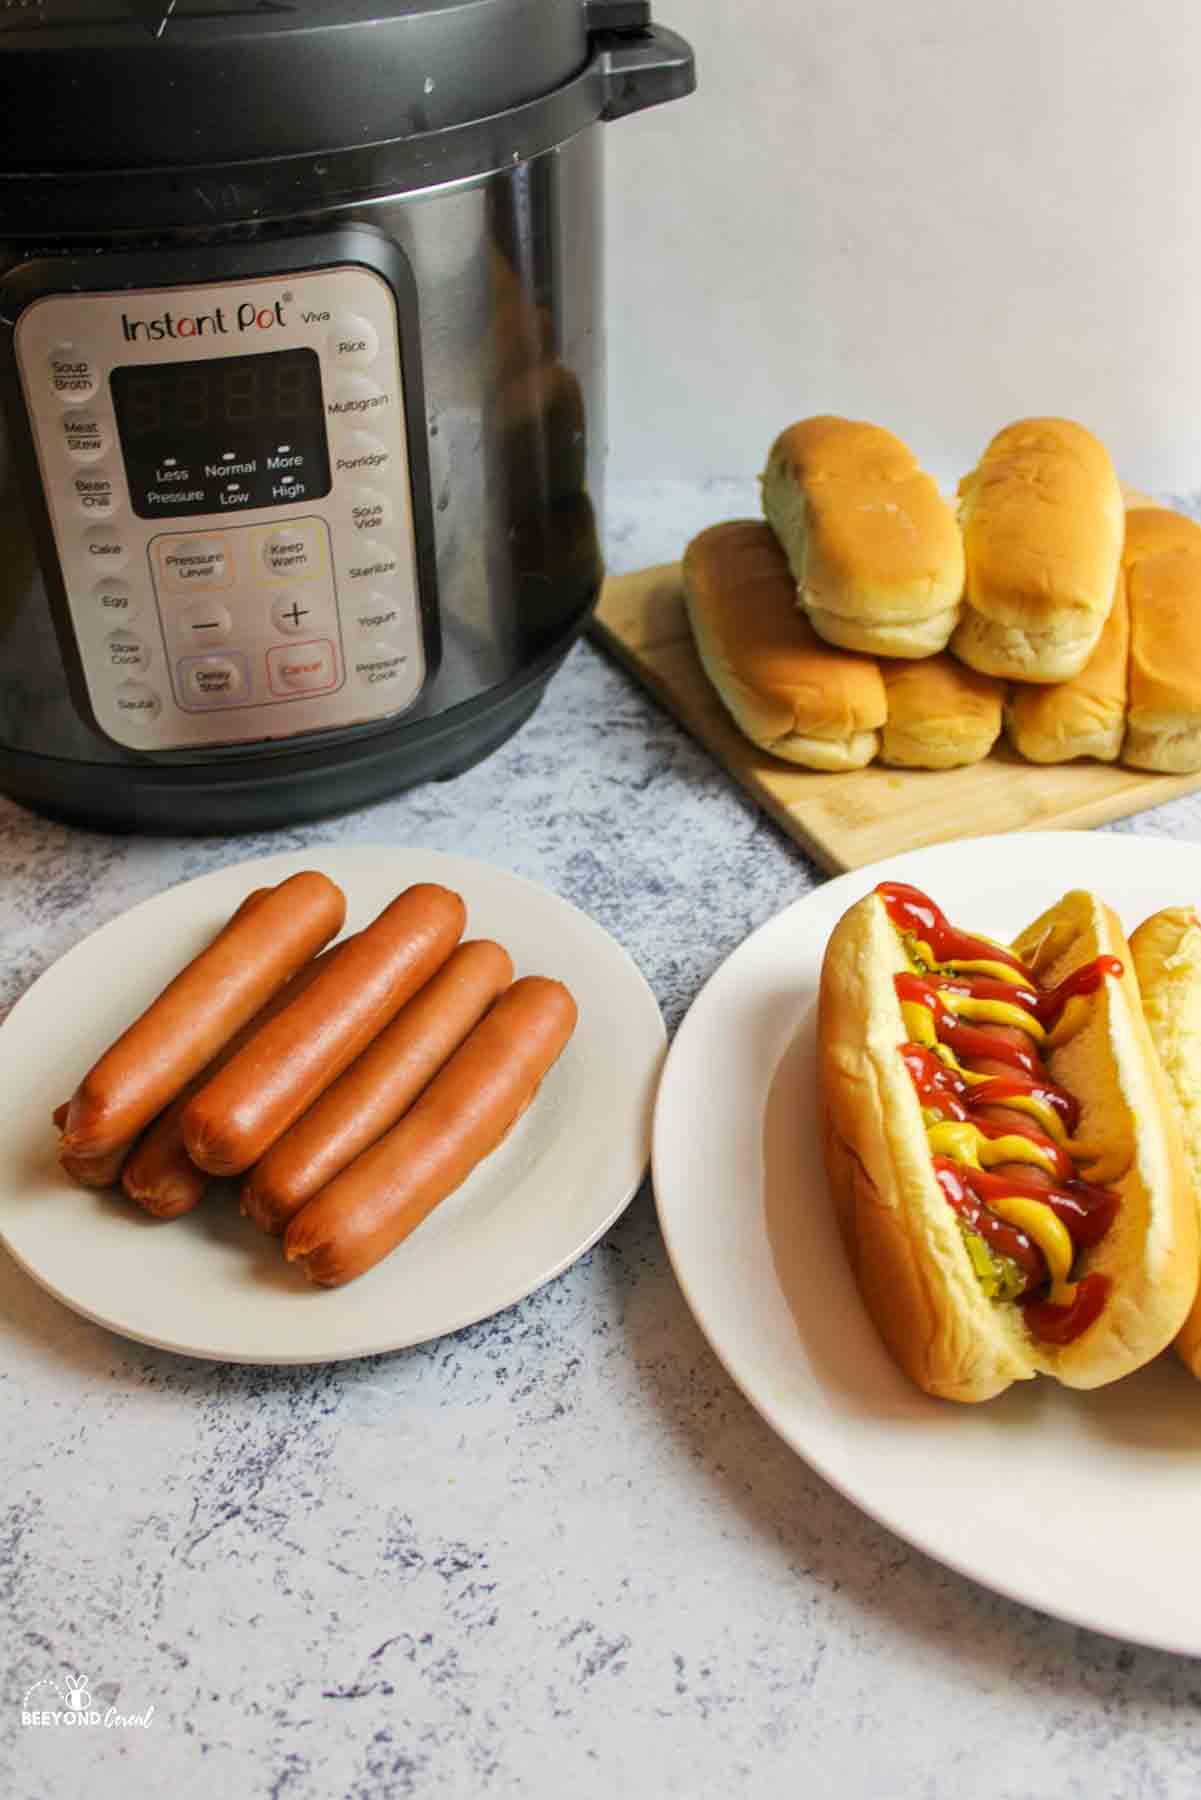 an instant pot next to hot dogs and buns and prepared hot dogs